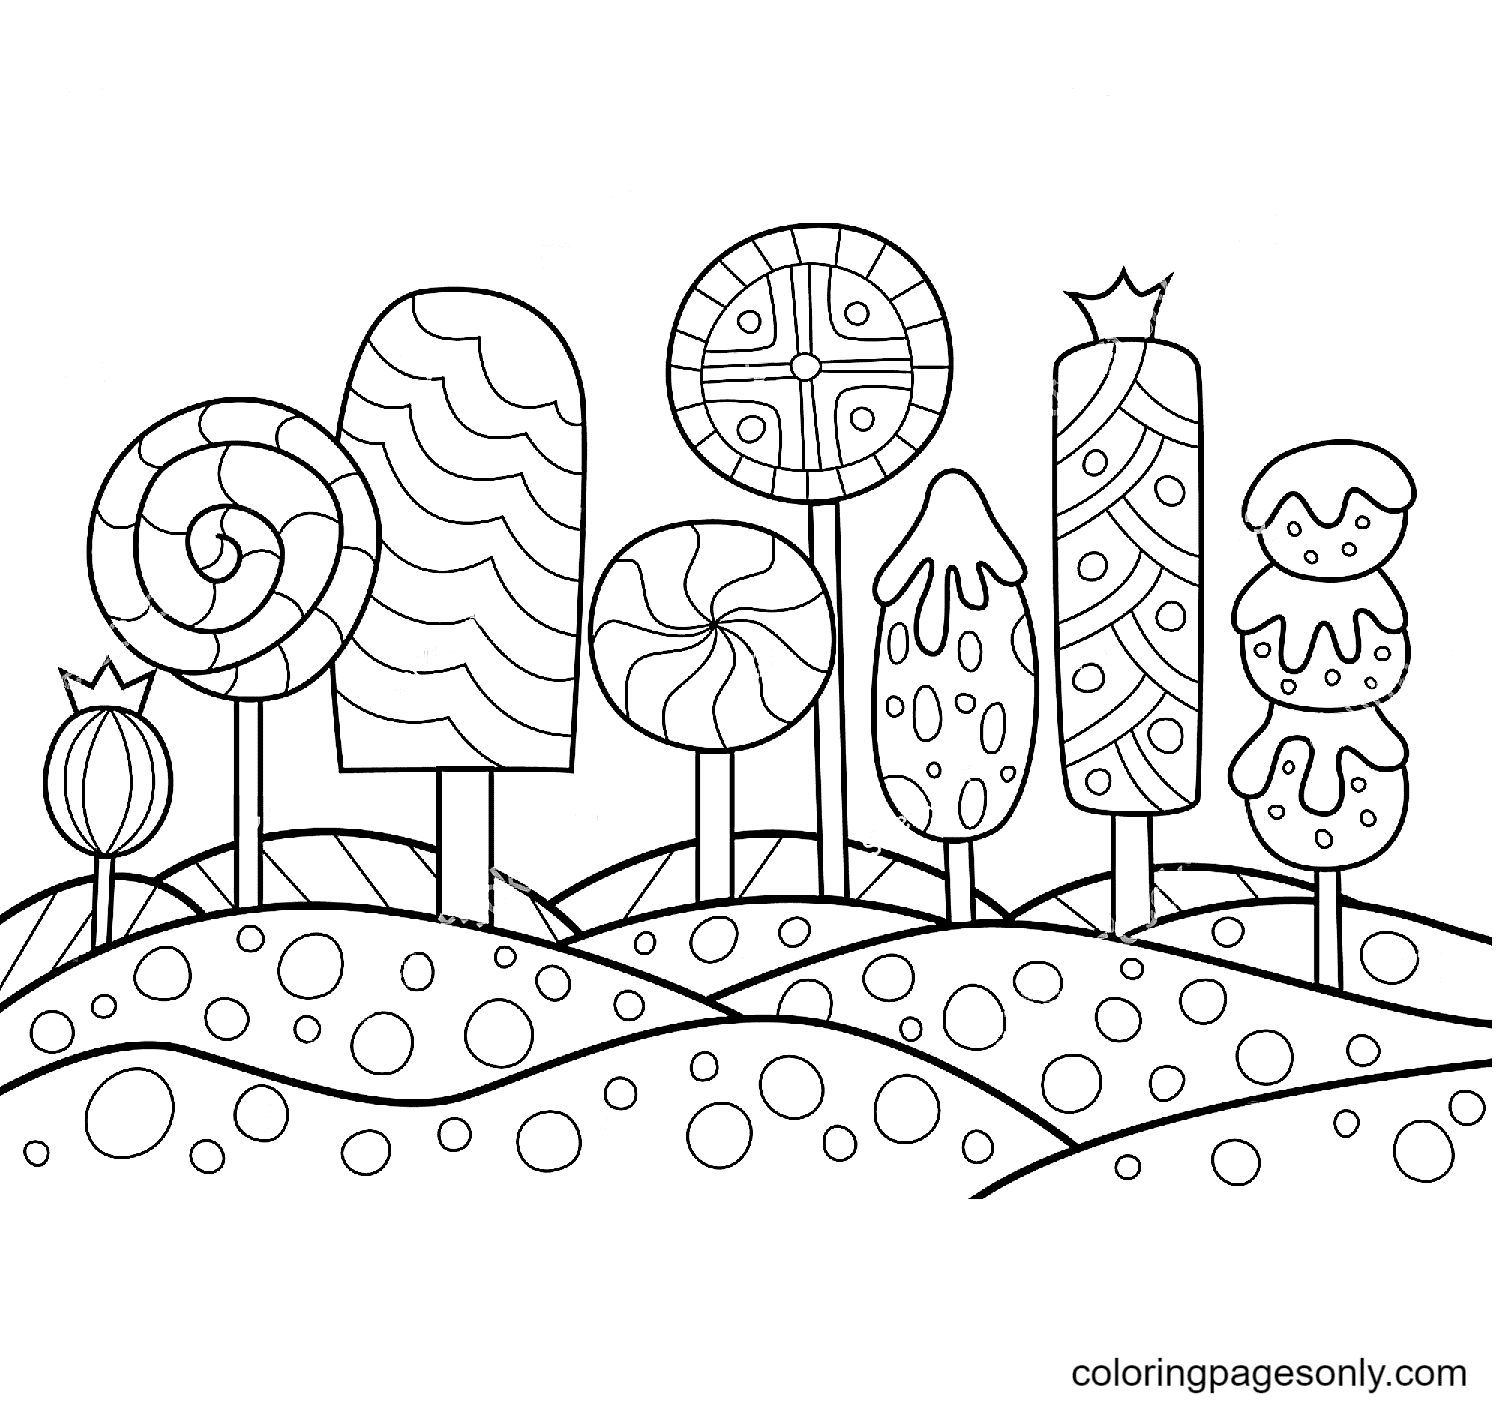 Candy Island Coloring Page